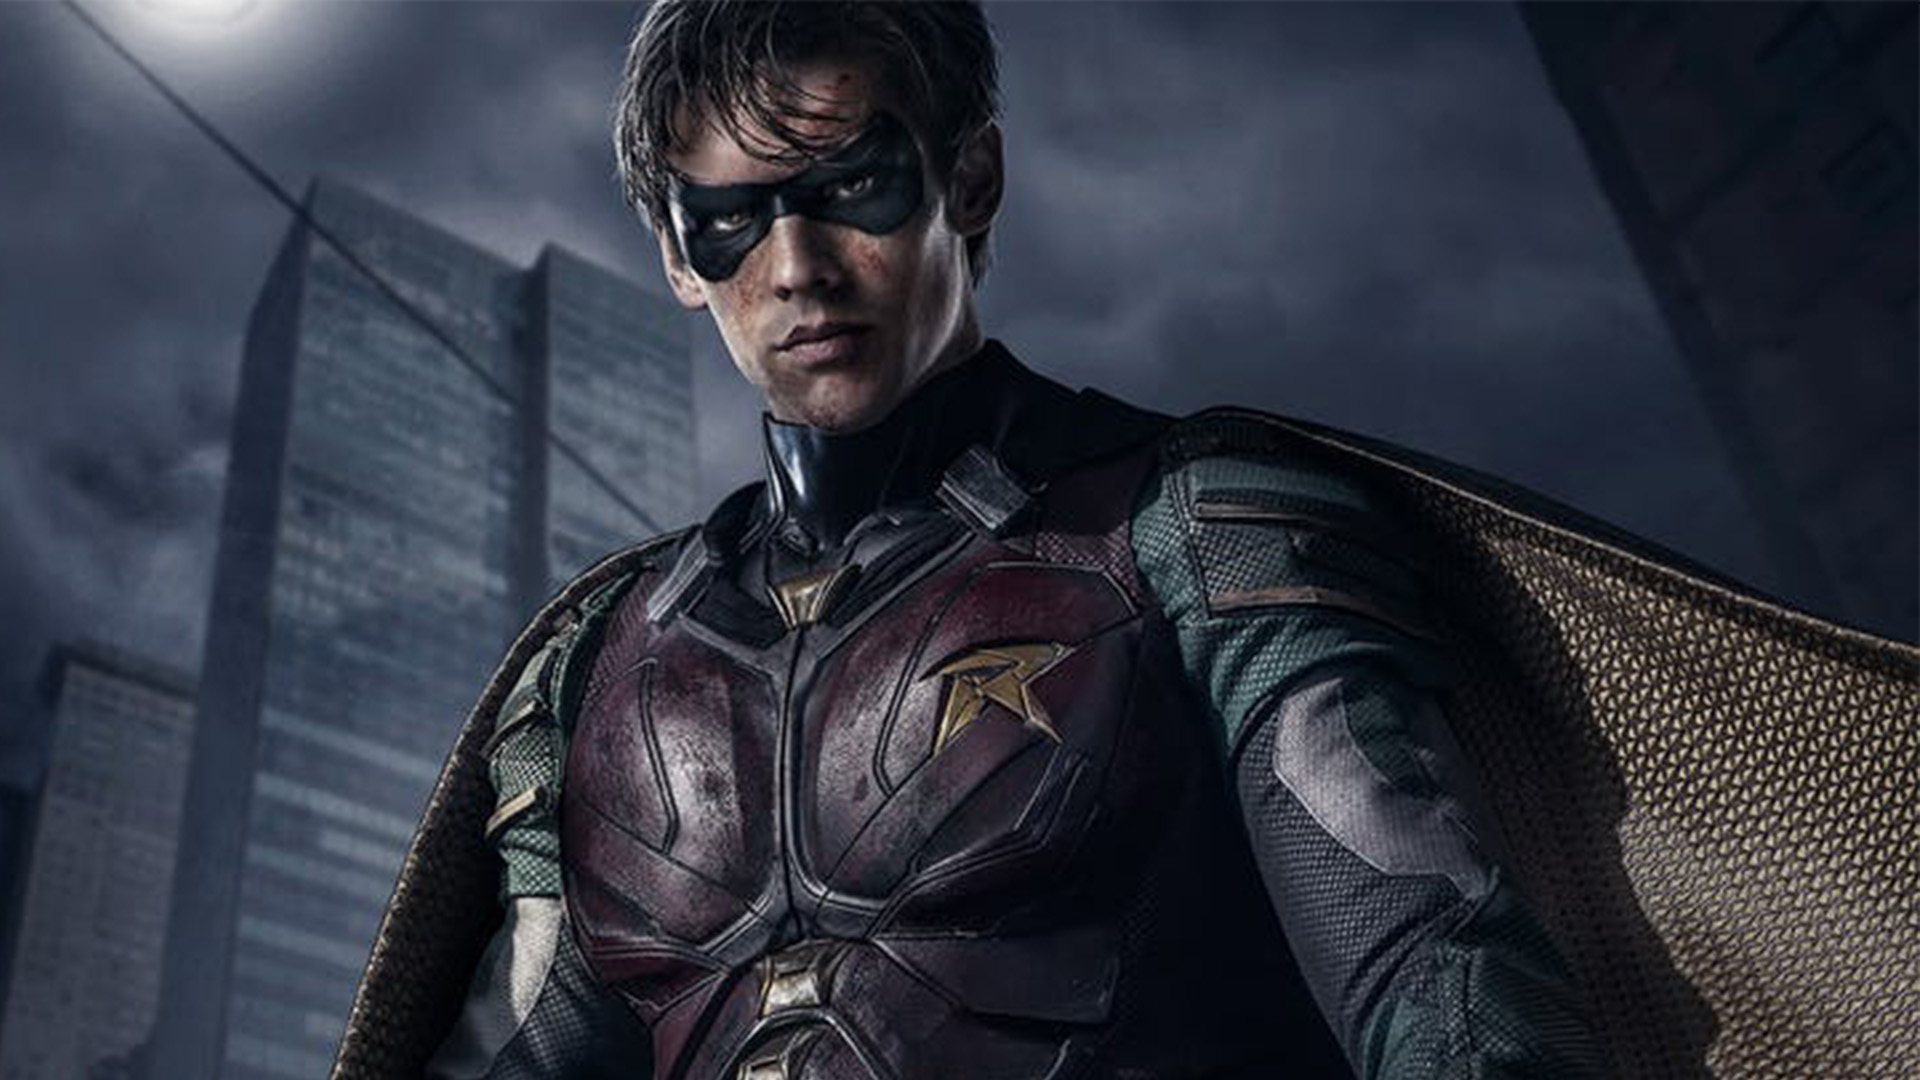 Batman's Sidekick Robin Is Intense in This Violent Trailer for DC's